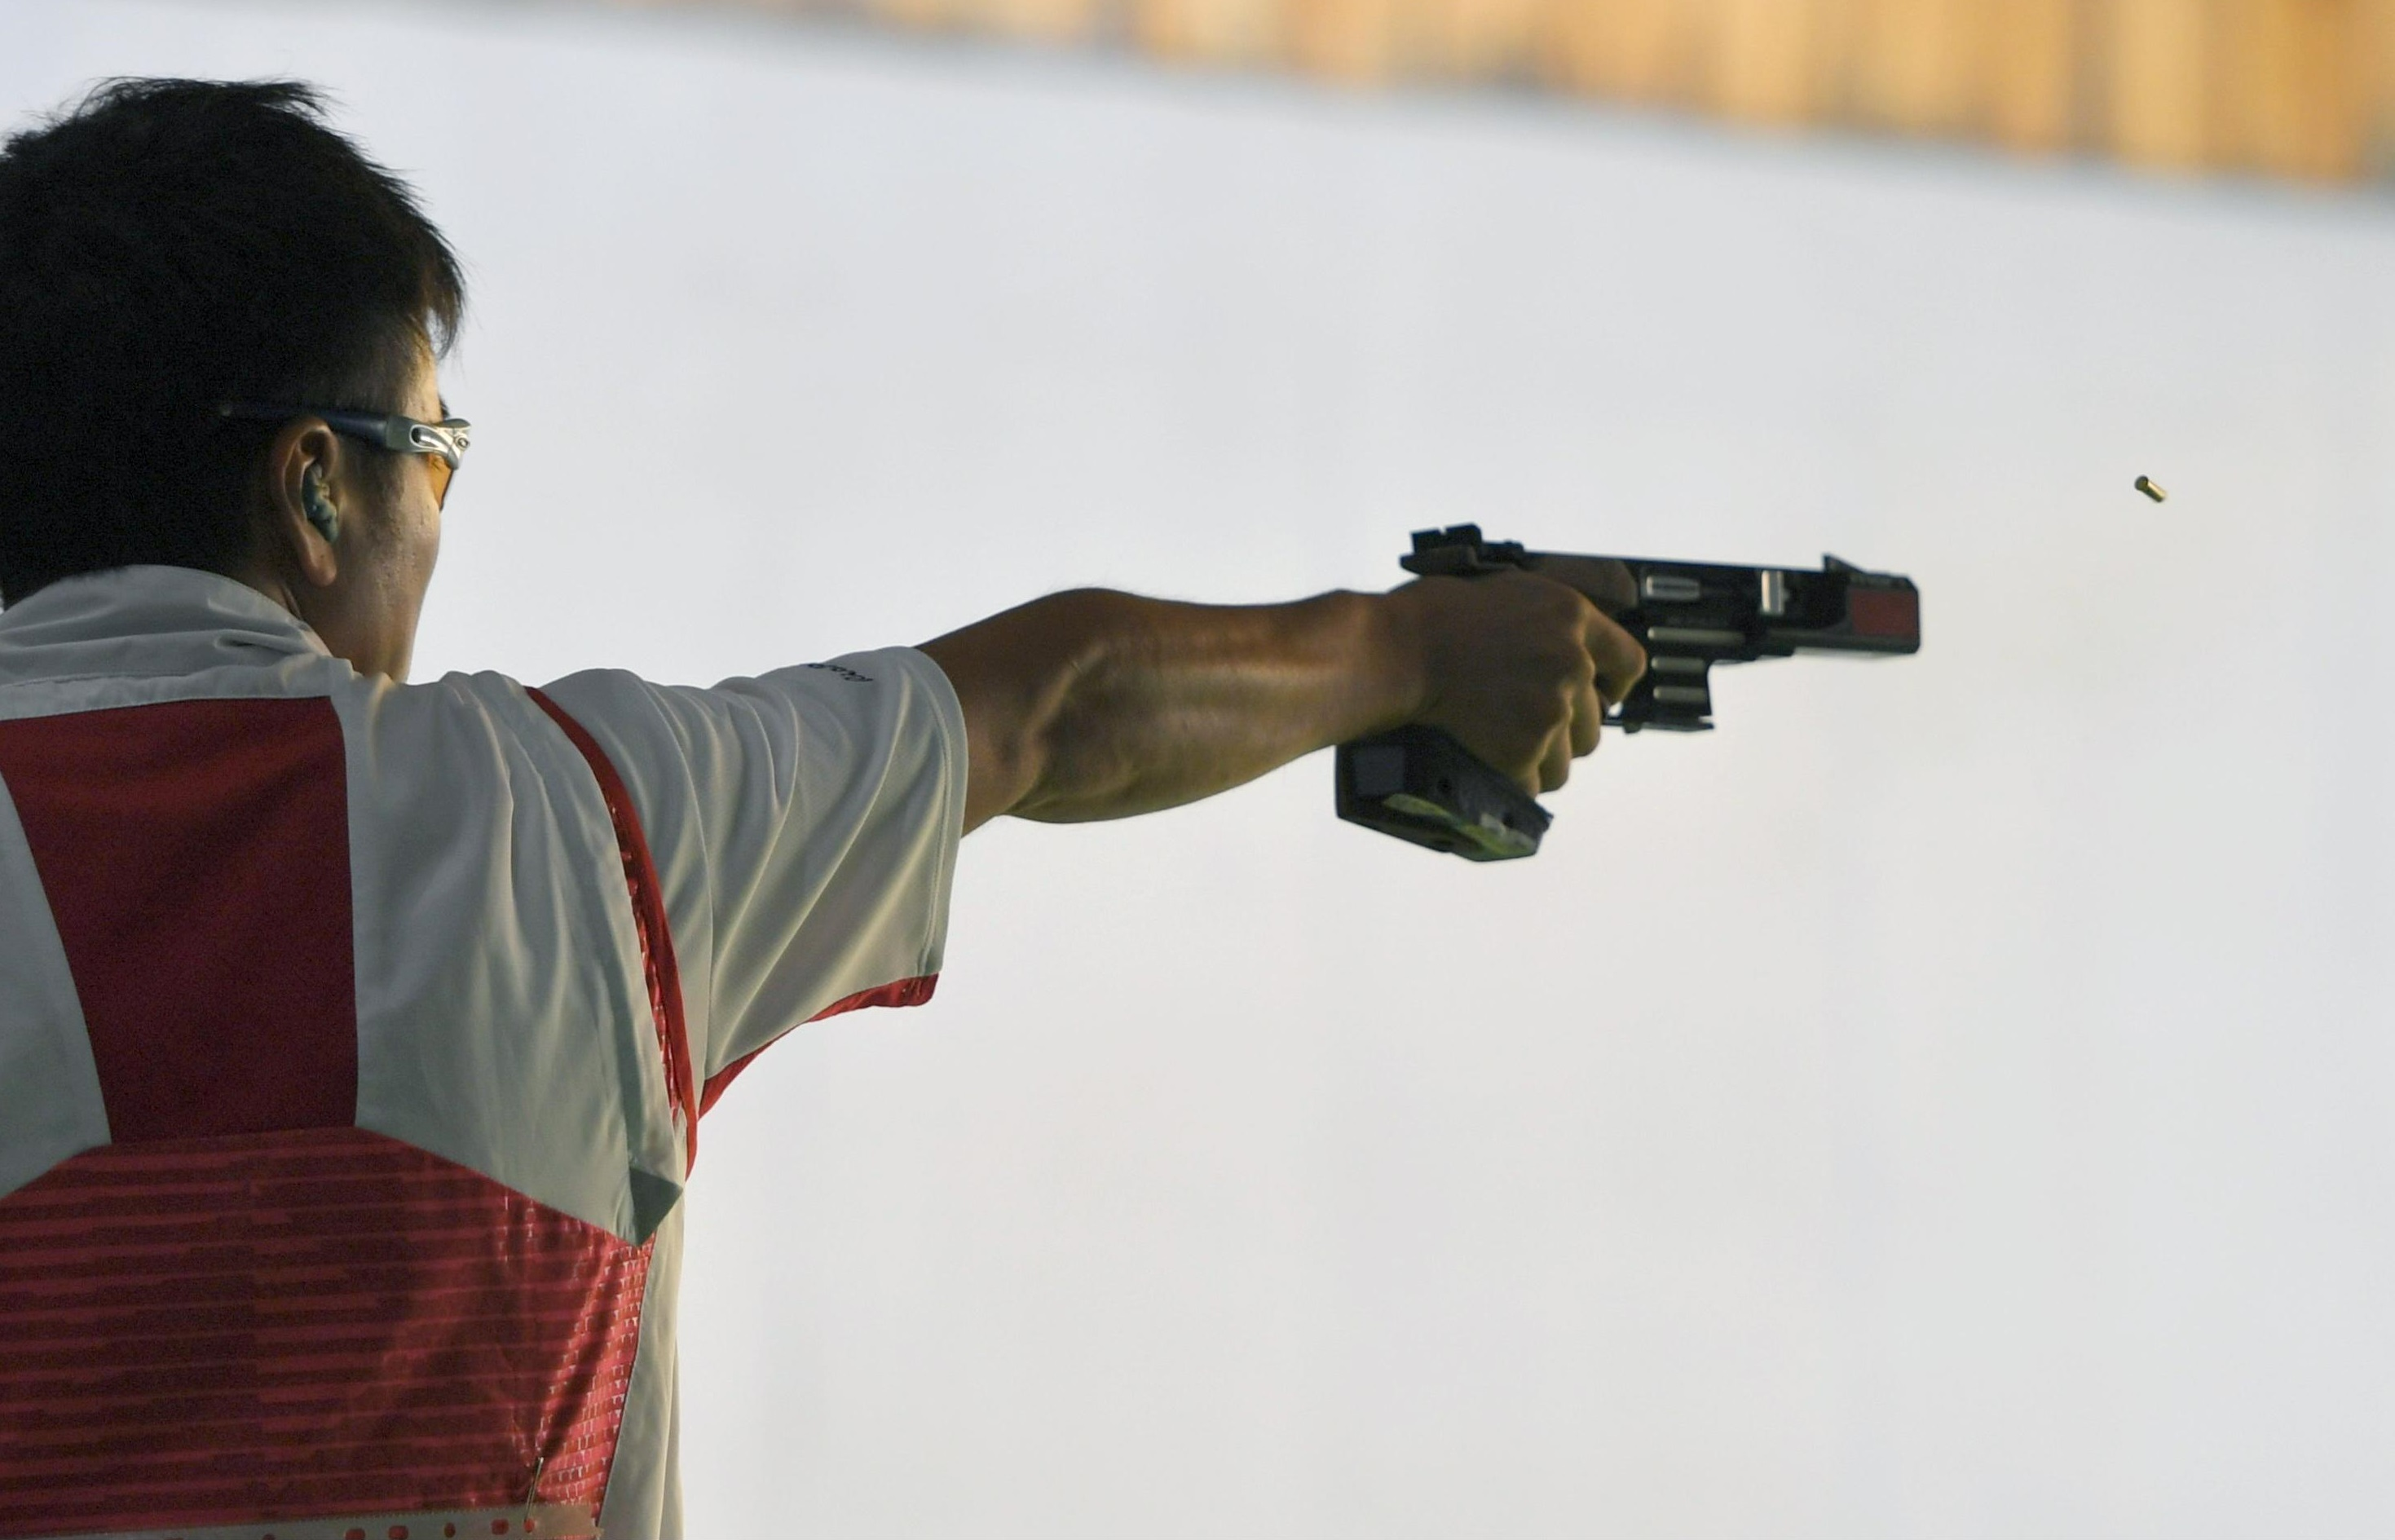 Eita Mori shoots during the men's 25-meter rapid fire pistol qualification round at the 2016 Summer Olympics in Rio de Janeiro. | KYODO